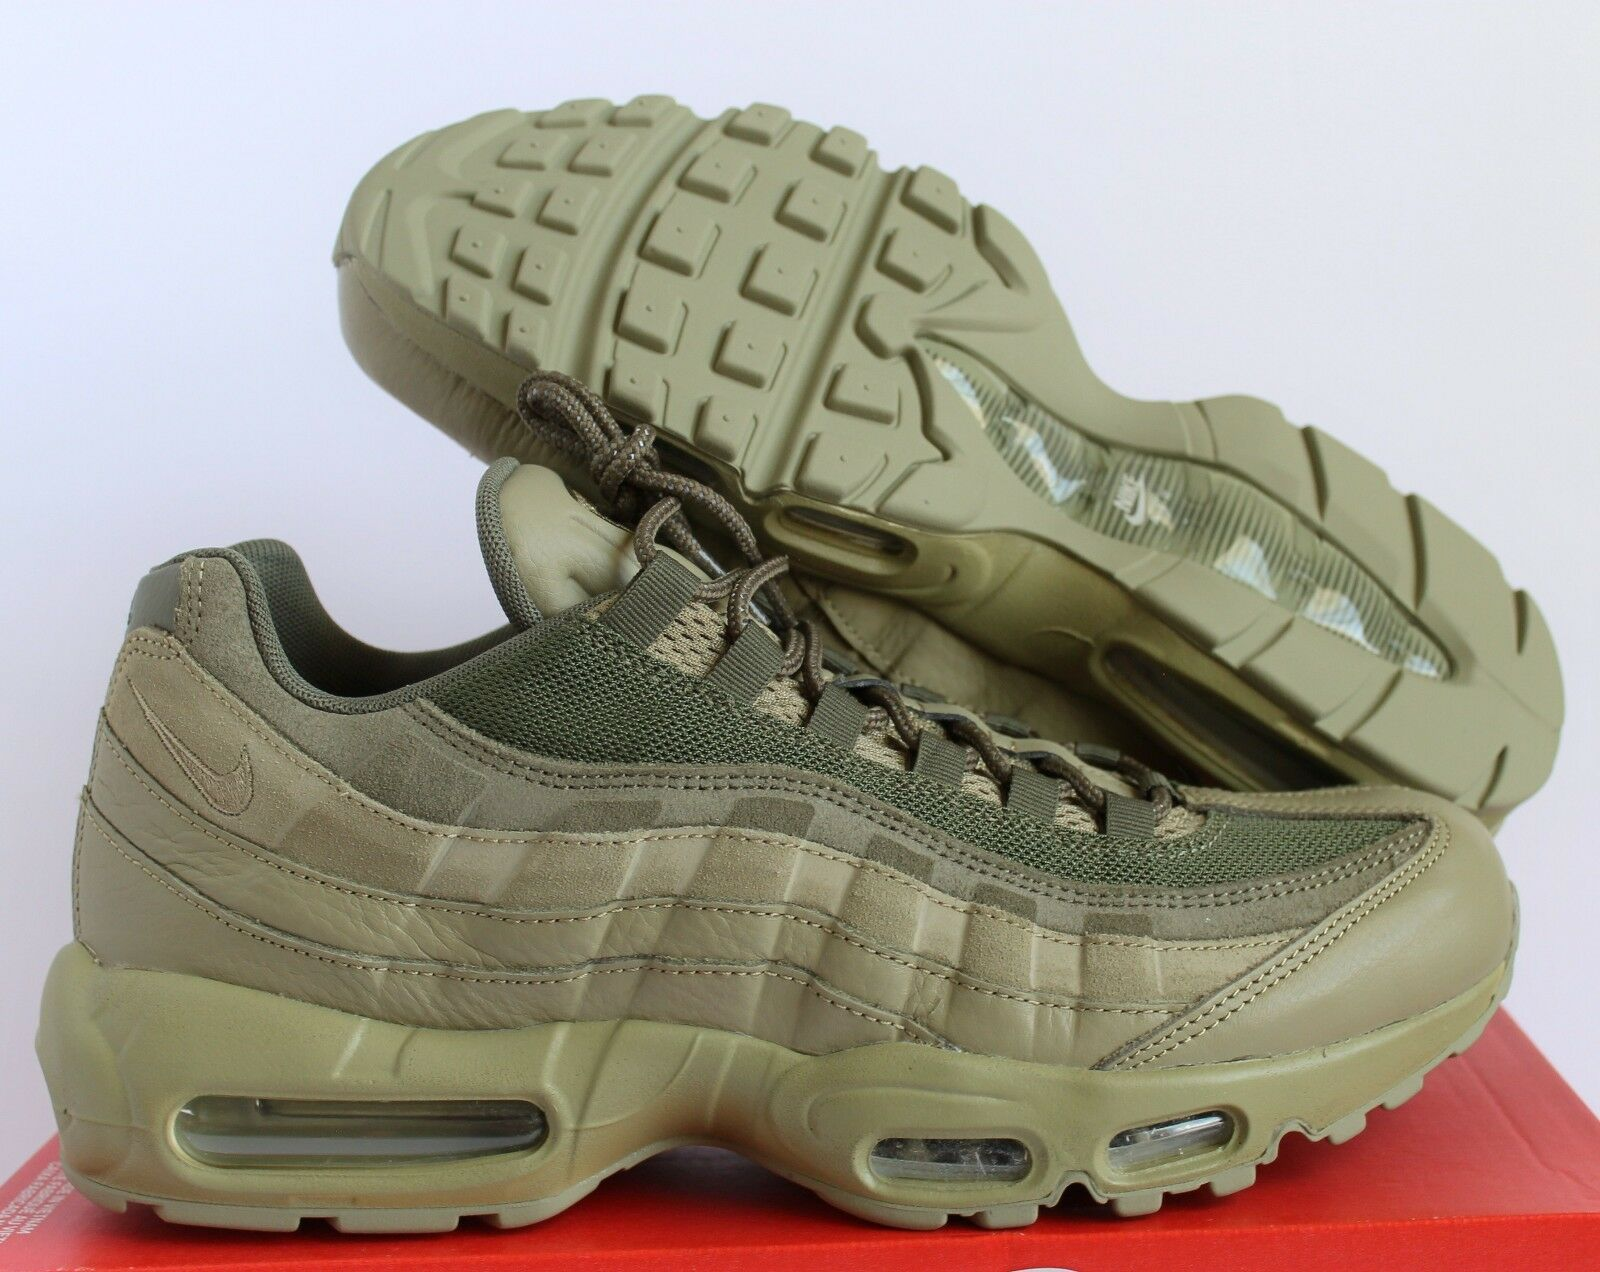 cfbac6c8c4e116 Nike Air Max 95 Premium PRM Neutral Olive Green Sz 11 538416-201 for ...